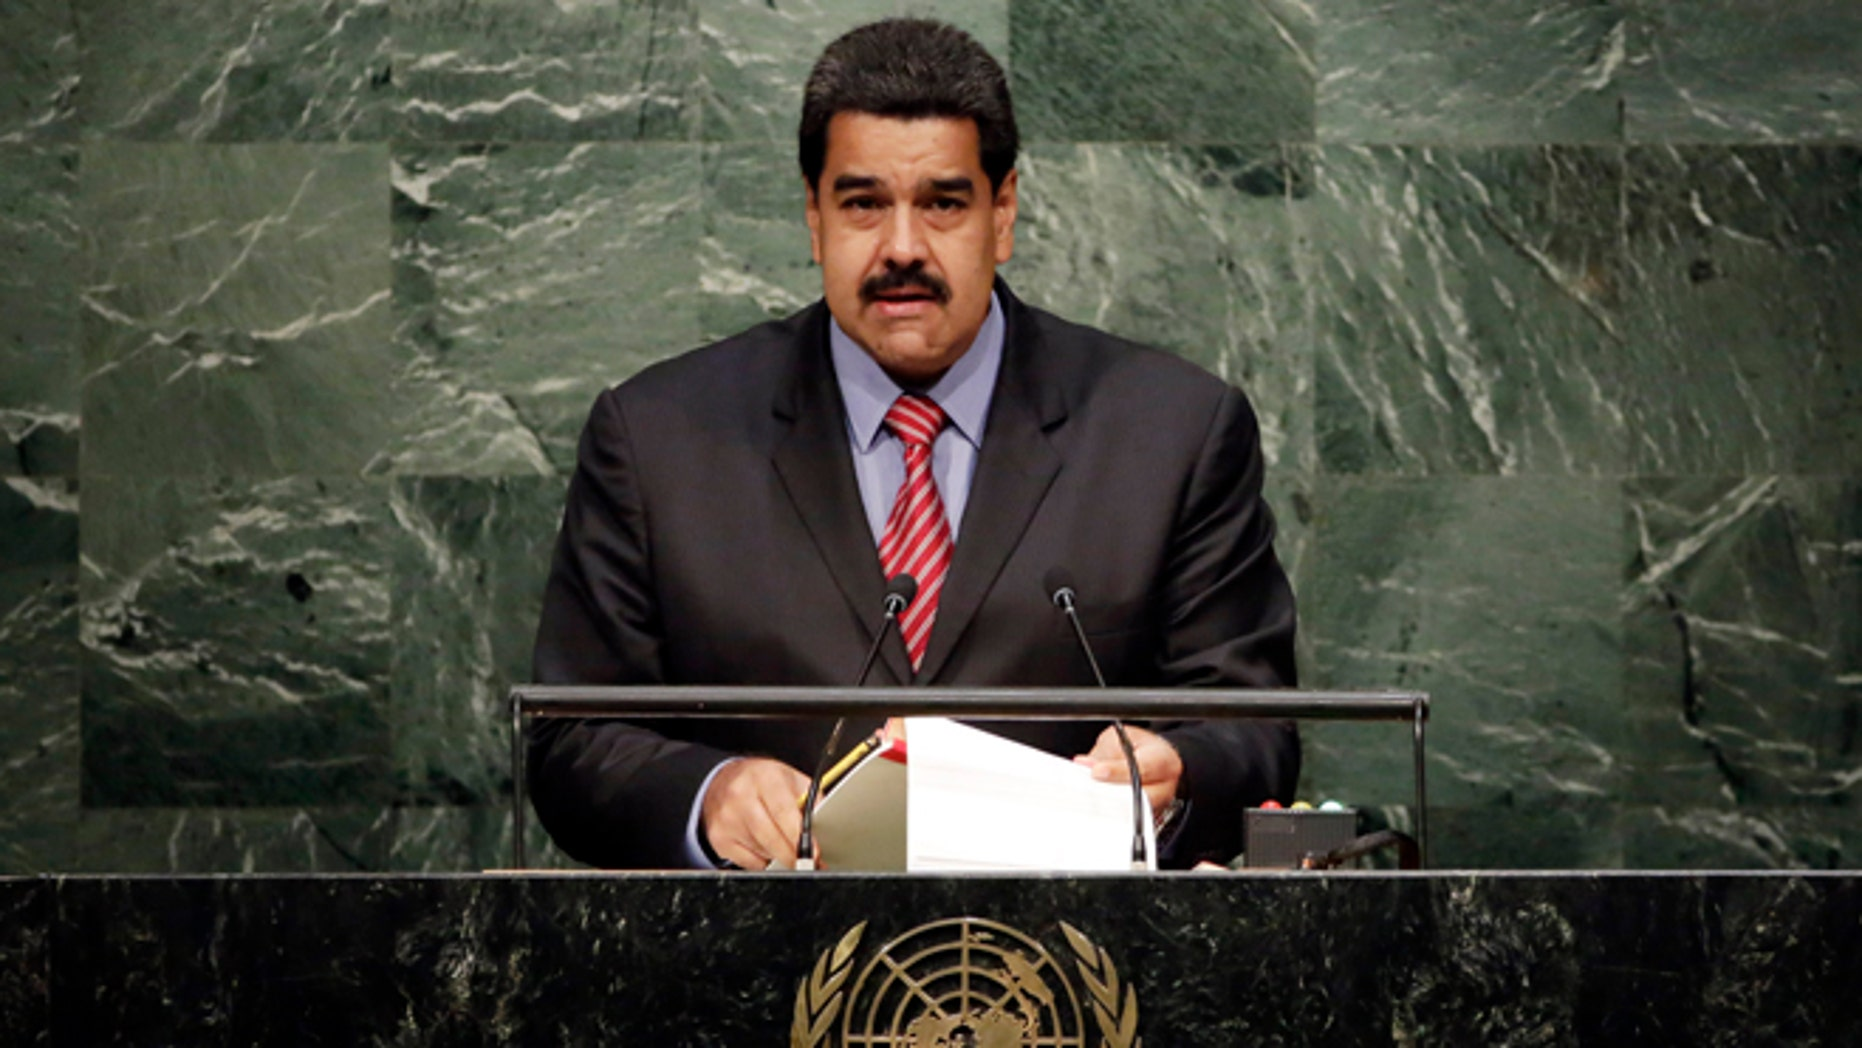 President Nicolas Maduro Moros, of Venezuela, addresses the 2015 Sustainable Development Summit, Sunday, Sept. 27, 2015, at United Nations headquarters. (AP Photo/Richard Drew)